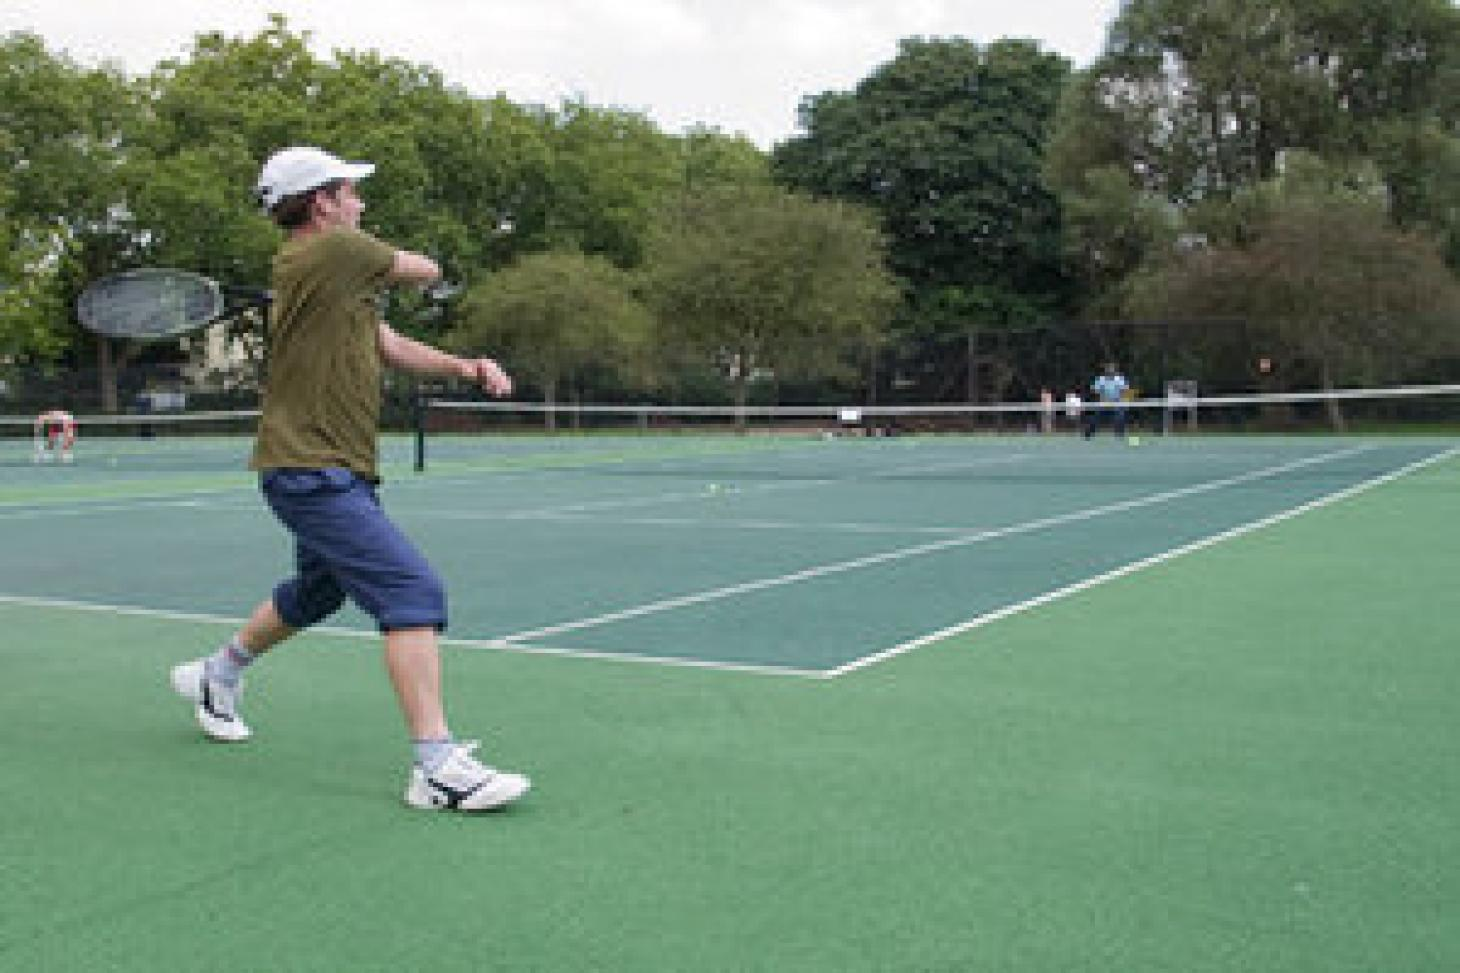 Parliament Hill School Tennis Courts Outdoor | Hard (macadam) tennis court